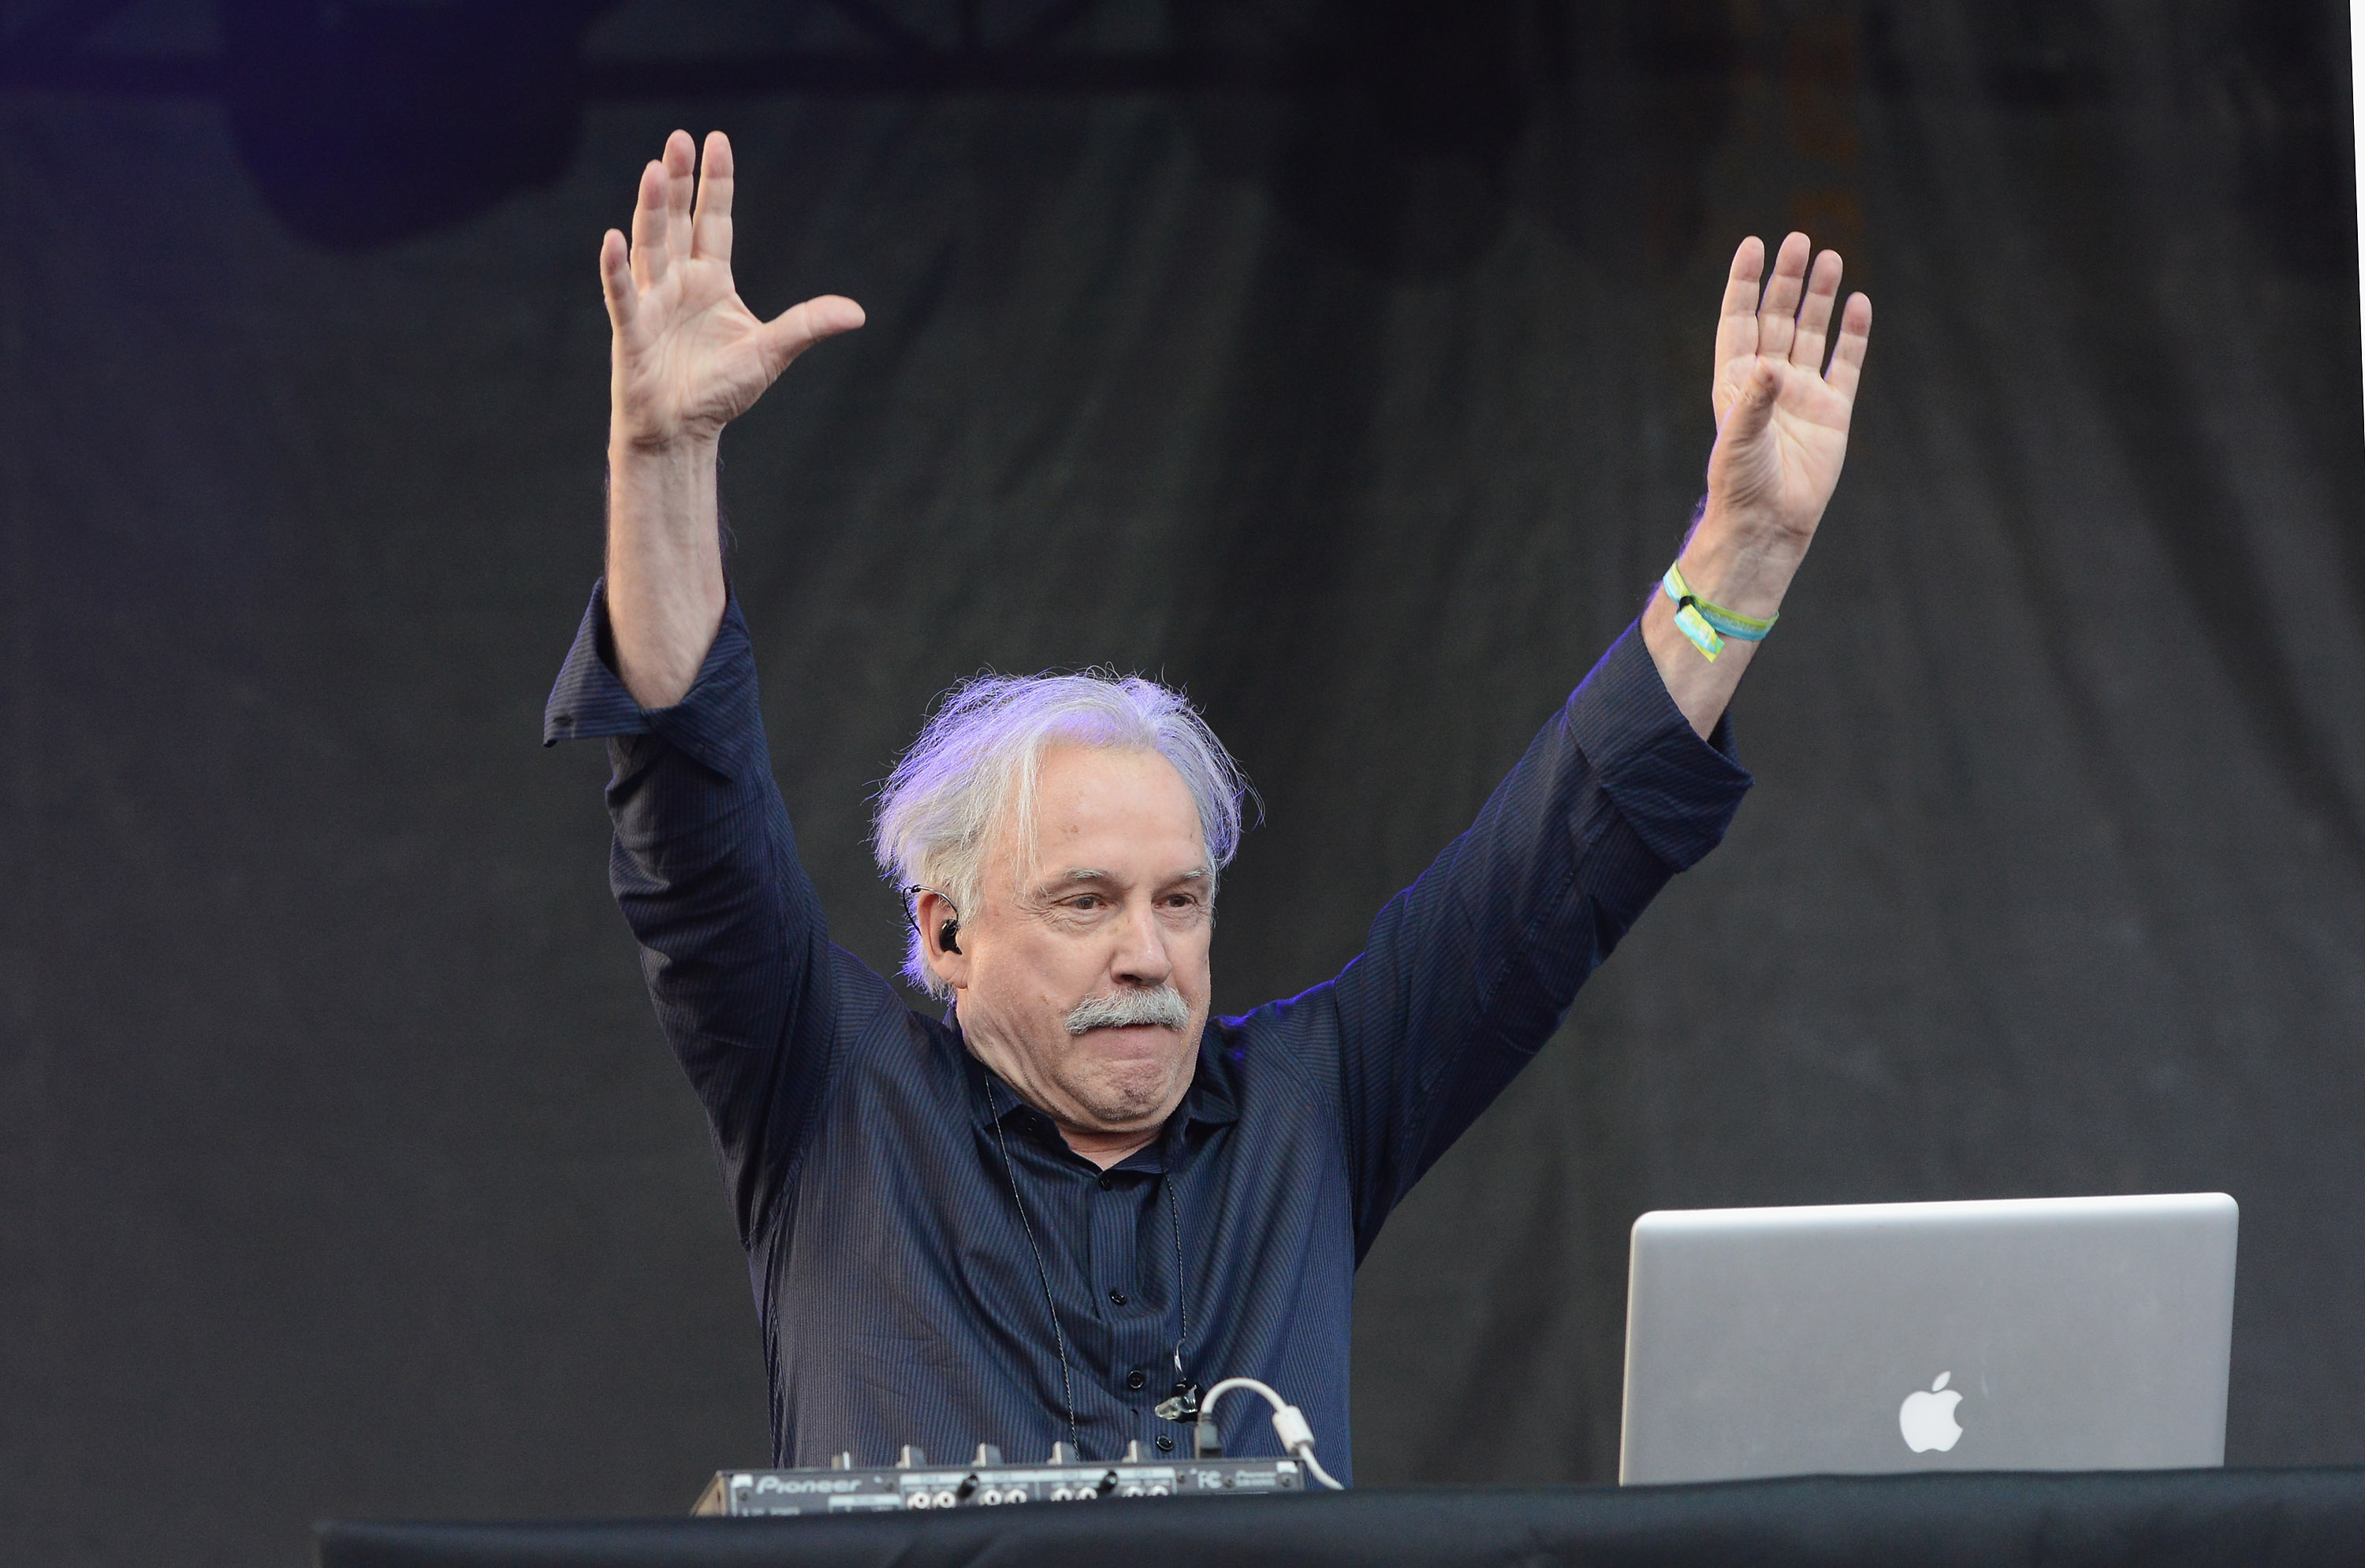 Giorgio Moroder performs at the Pitchfork Music Festival on July 18, 2014 in Chicago, Illinois.